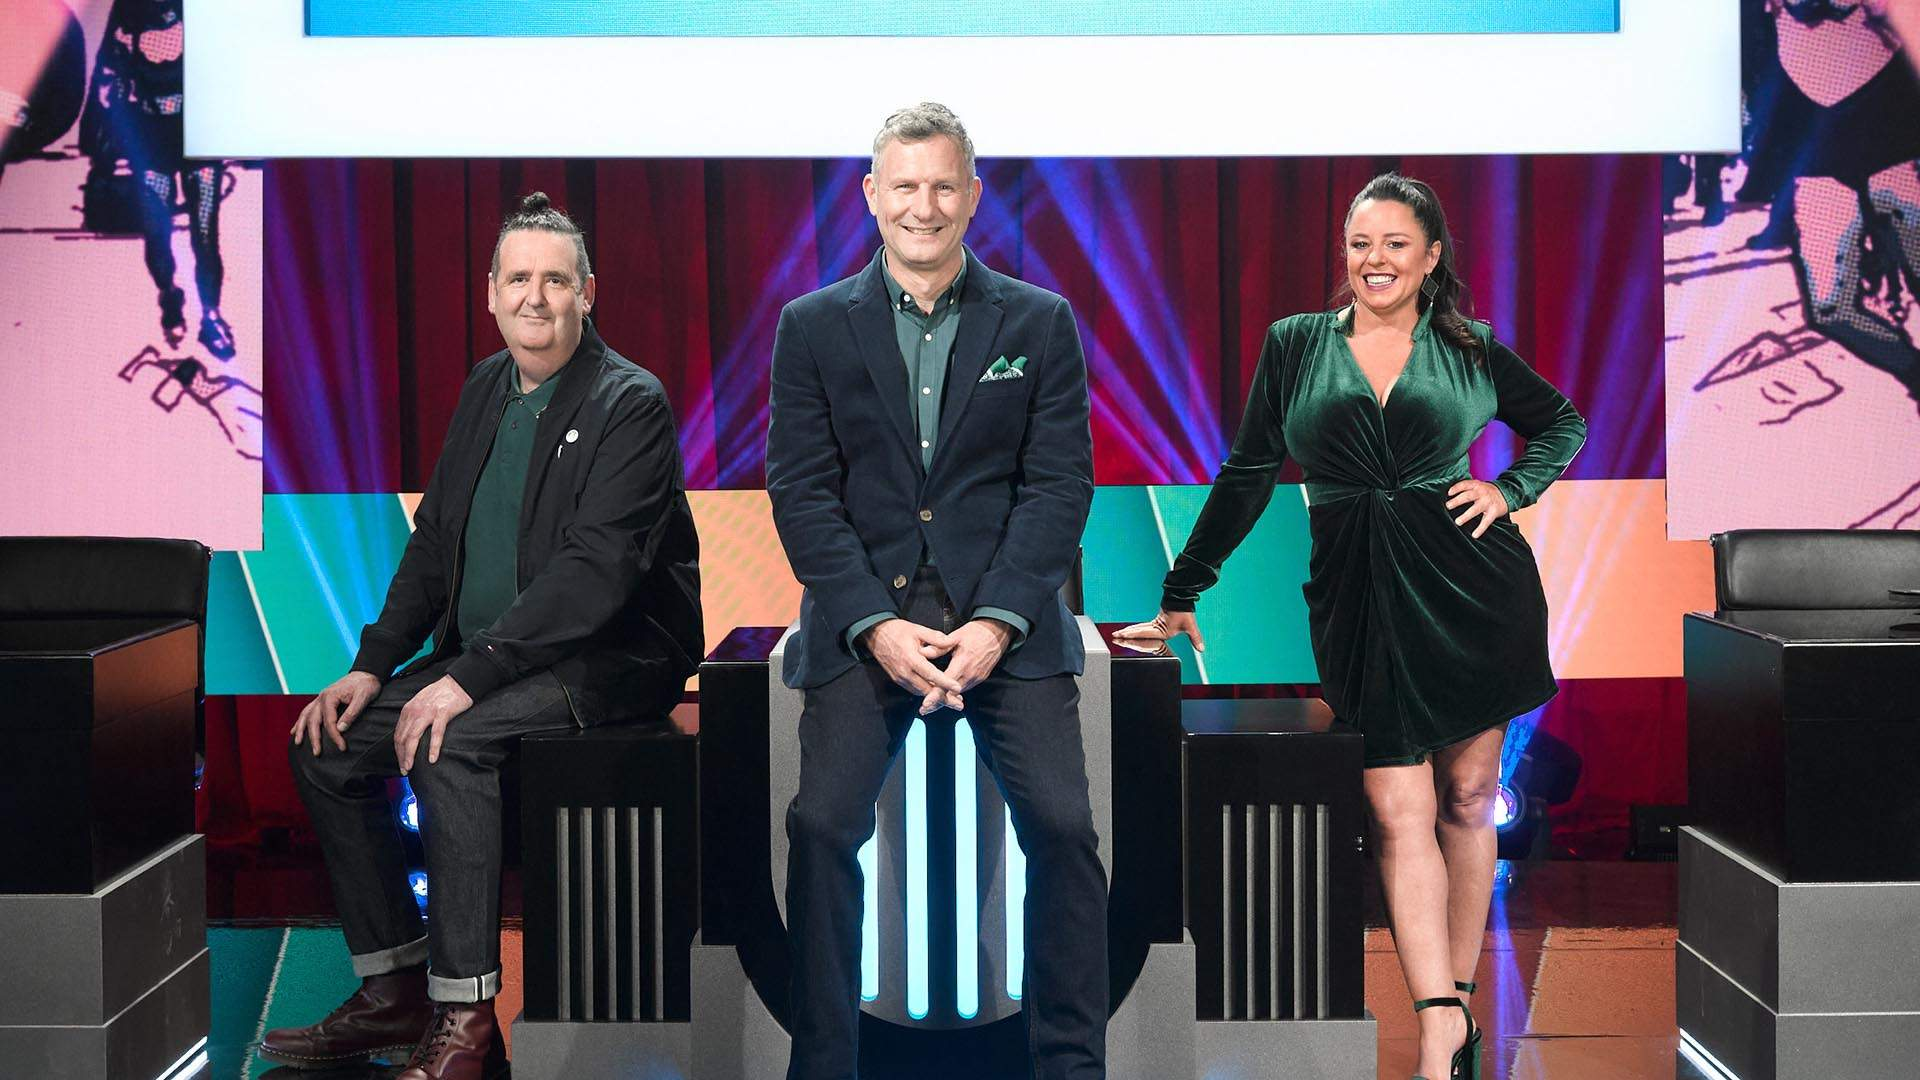 The ABC's Long-Awaited New Full Season of 'Spicks and Specks' Kicks Off Tonight